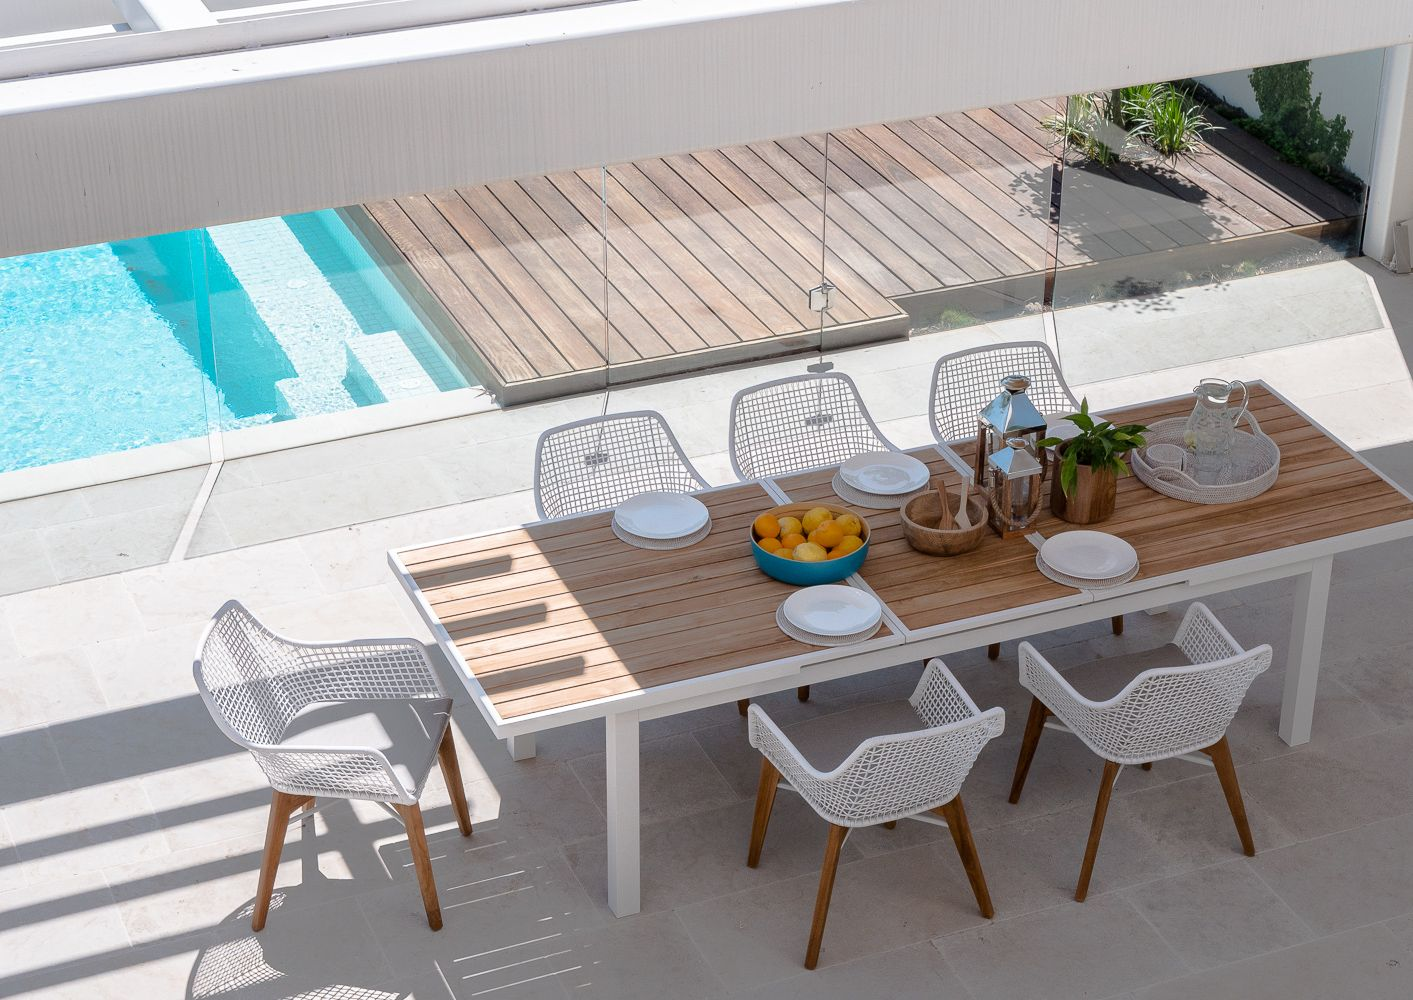 Fdt609 Male Teak Extension Table Outdoor Dining Table Outdoor